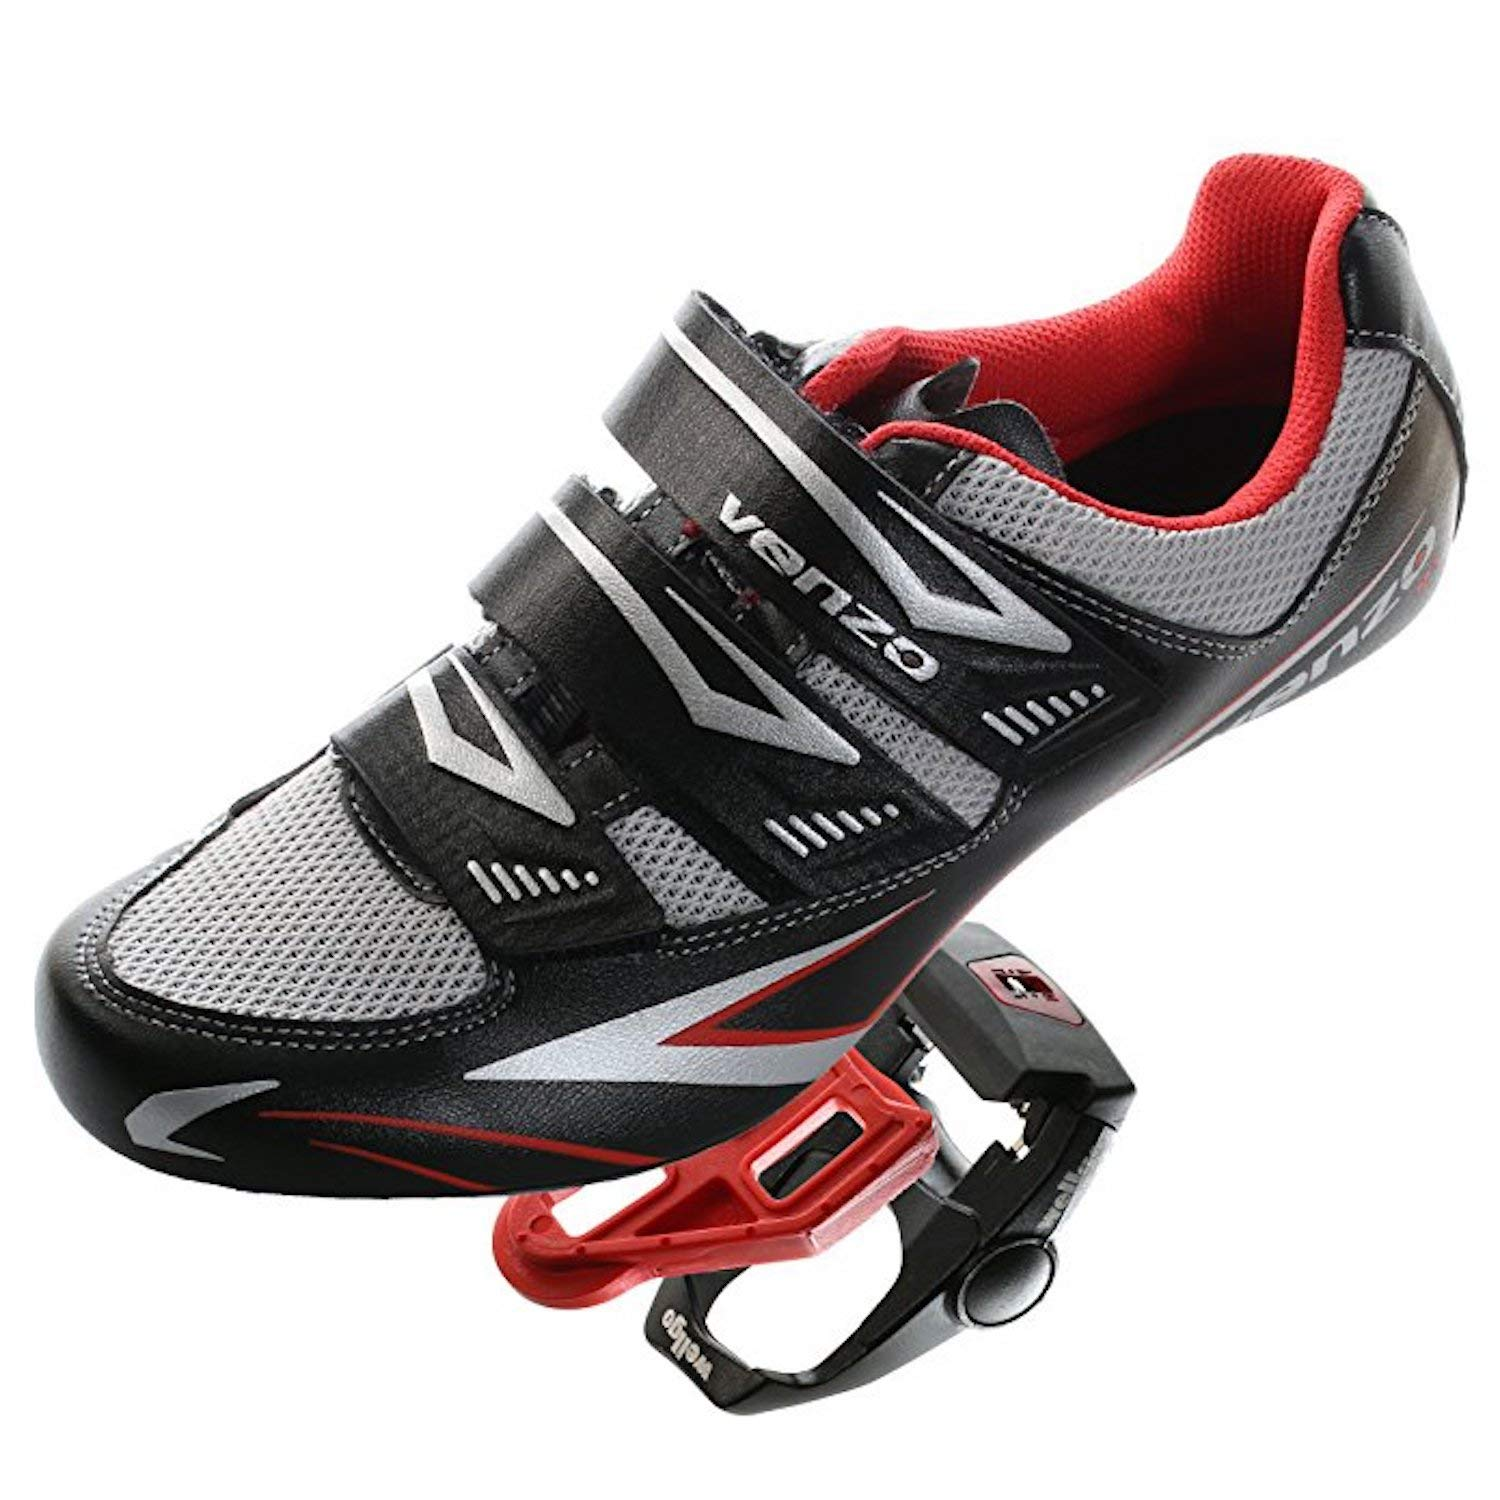 Venzo Road Bike for Shimano SPD SL Look Cycling Bicycle Shoes & Pedals 48 by Venzo (Image #1)